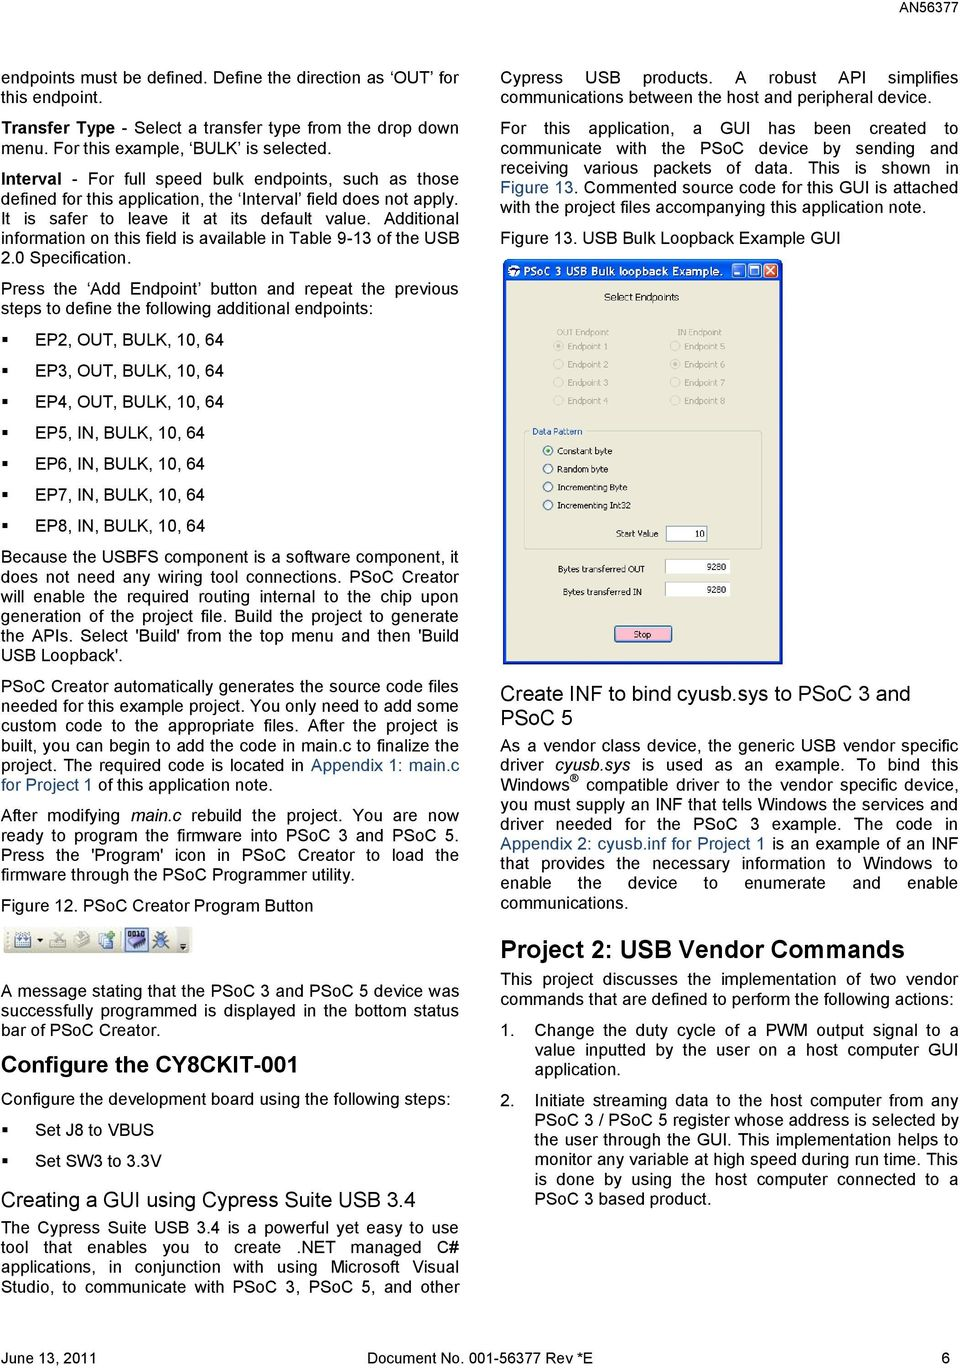 AN PSoC 3 / PSoC 5: USB Vendor-Specific Device  Application Note